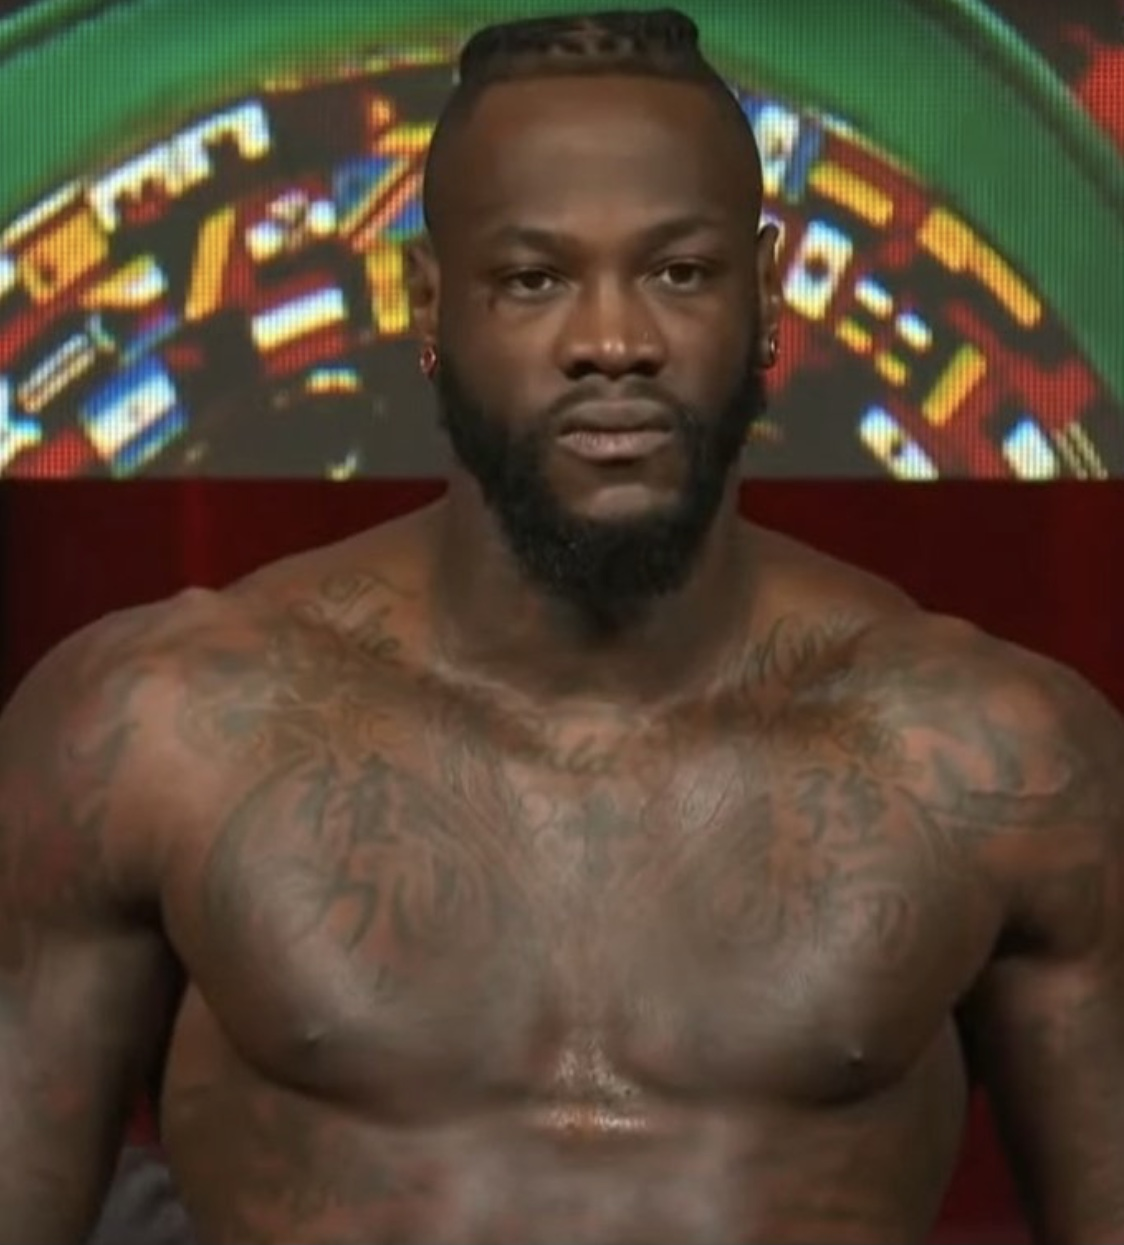 Wilder: 238 – Fury: 277 – We Have A Fight